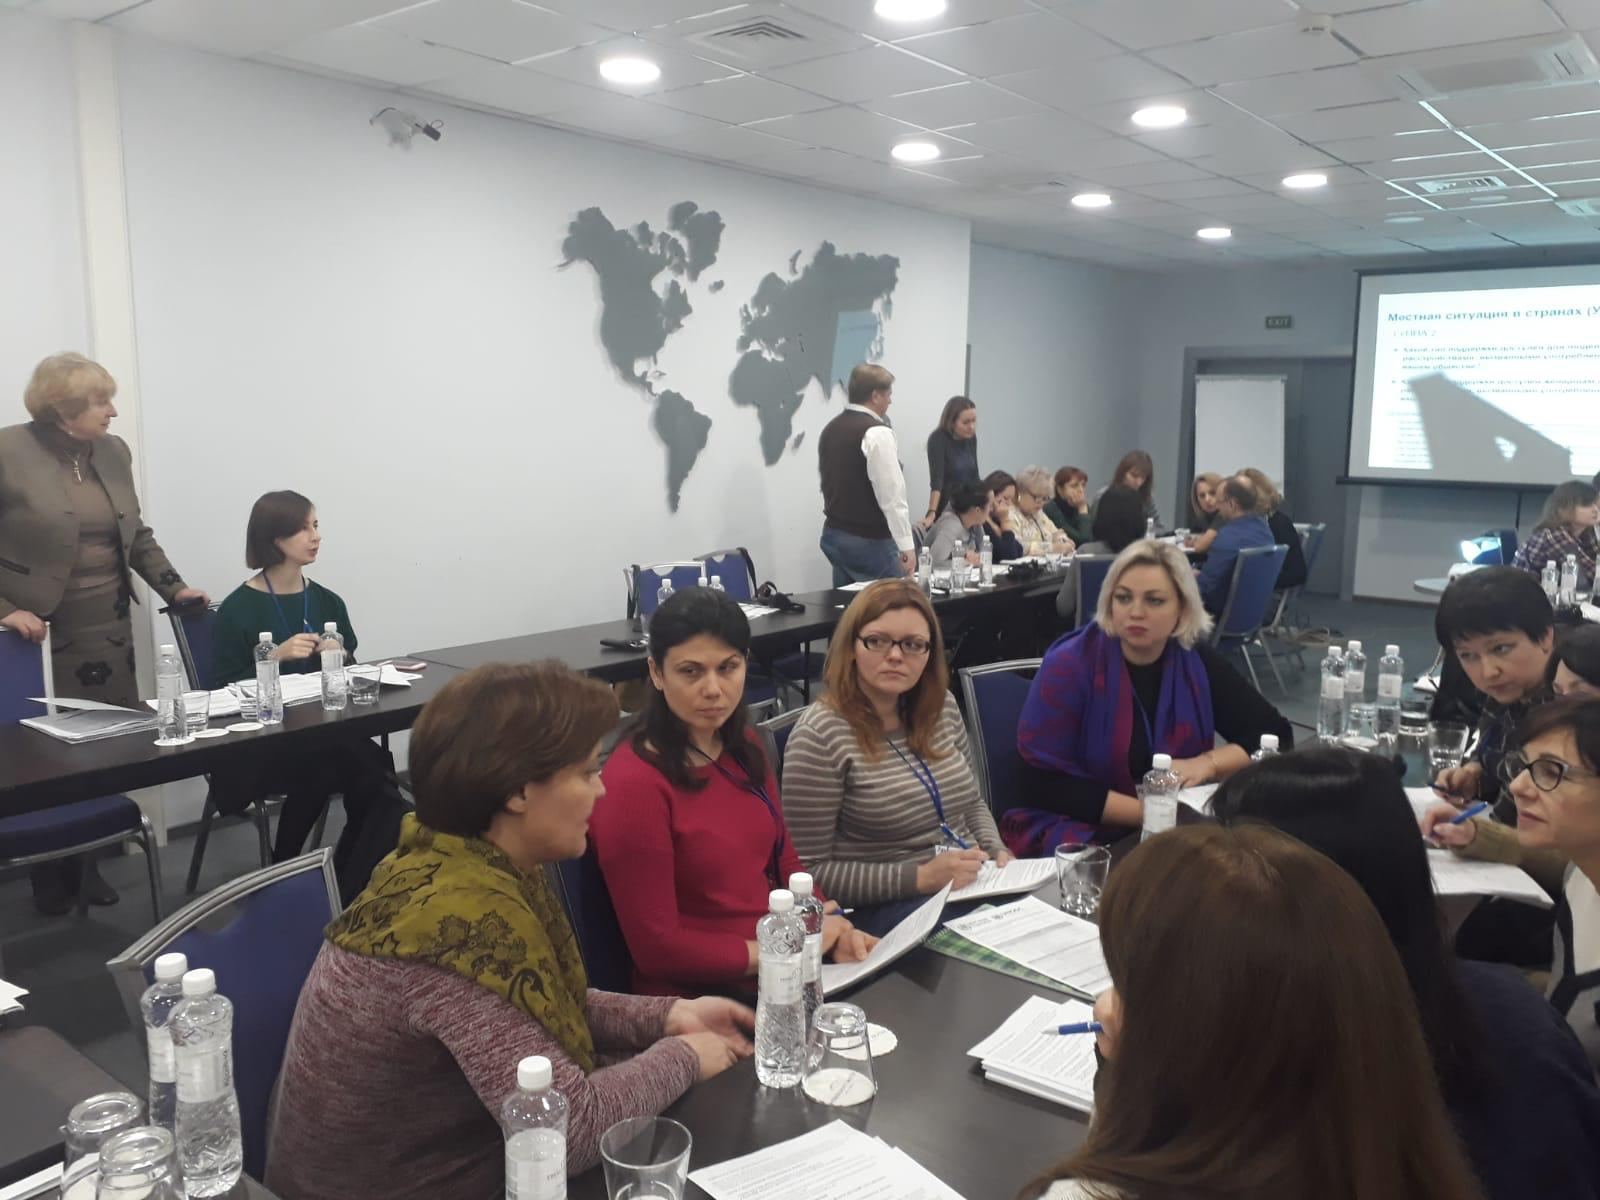 "<p> </p> <p><span style=""margin:0px;padding:0px;color:#000000;text-decoration:none"">UNODC and WHO organize international training on substance use treatment and care during pregnancy</span> <span style=""color:#000000;font-family:&#39;verdana&#39; , &#39;arial&#39; , &#39;helvetica&#39; , sans-serif;font-size:12.8px;font-style:normal;font-weight:400;letter-spacing:normal;text-indent:0px;text-transform:none;white-space:normal;word-spacing:0px;background-color:#ffffff;display:!important""> <a href=""https://www.unodc.org/unodc/en/frontpage/2019/December/unodc-and-who-organize-international-training-on-substance-use-treatment-and-care-during-pregnancy.html?ref&#61;fs2"">[Read more]</a> </span></p>"